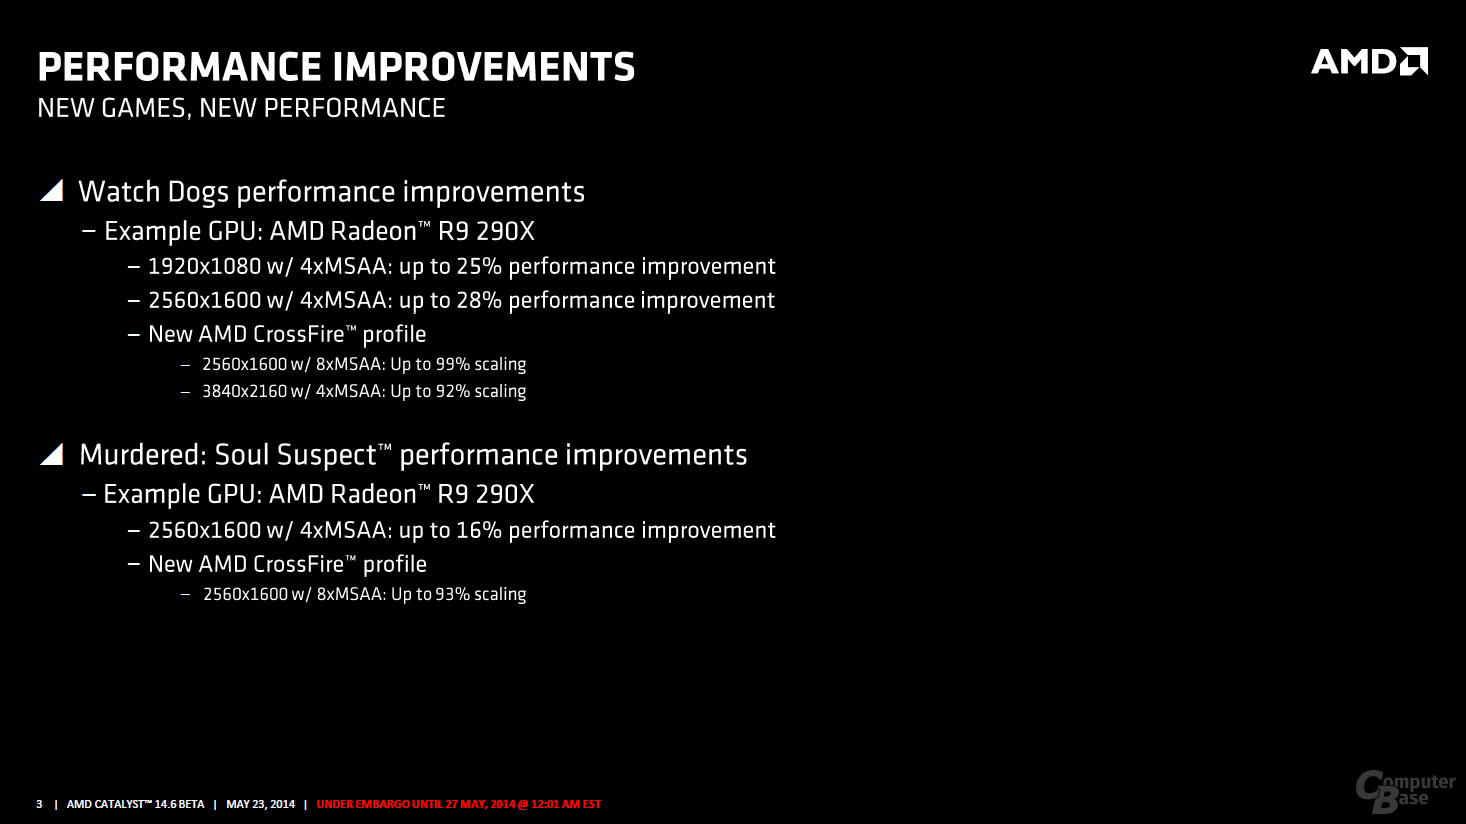 AMD Catalyst 14.6 Beta